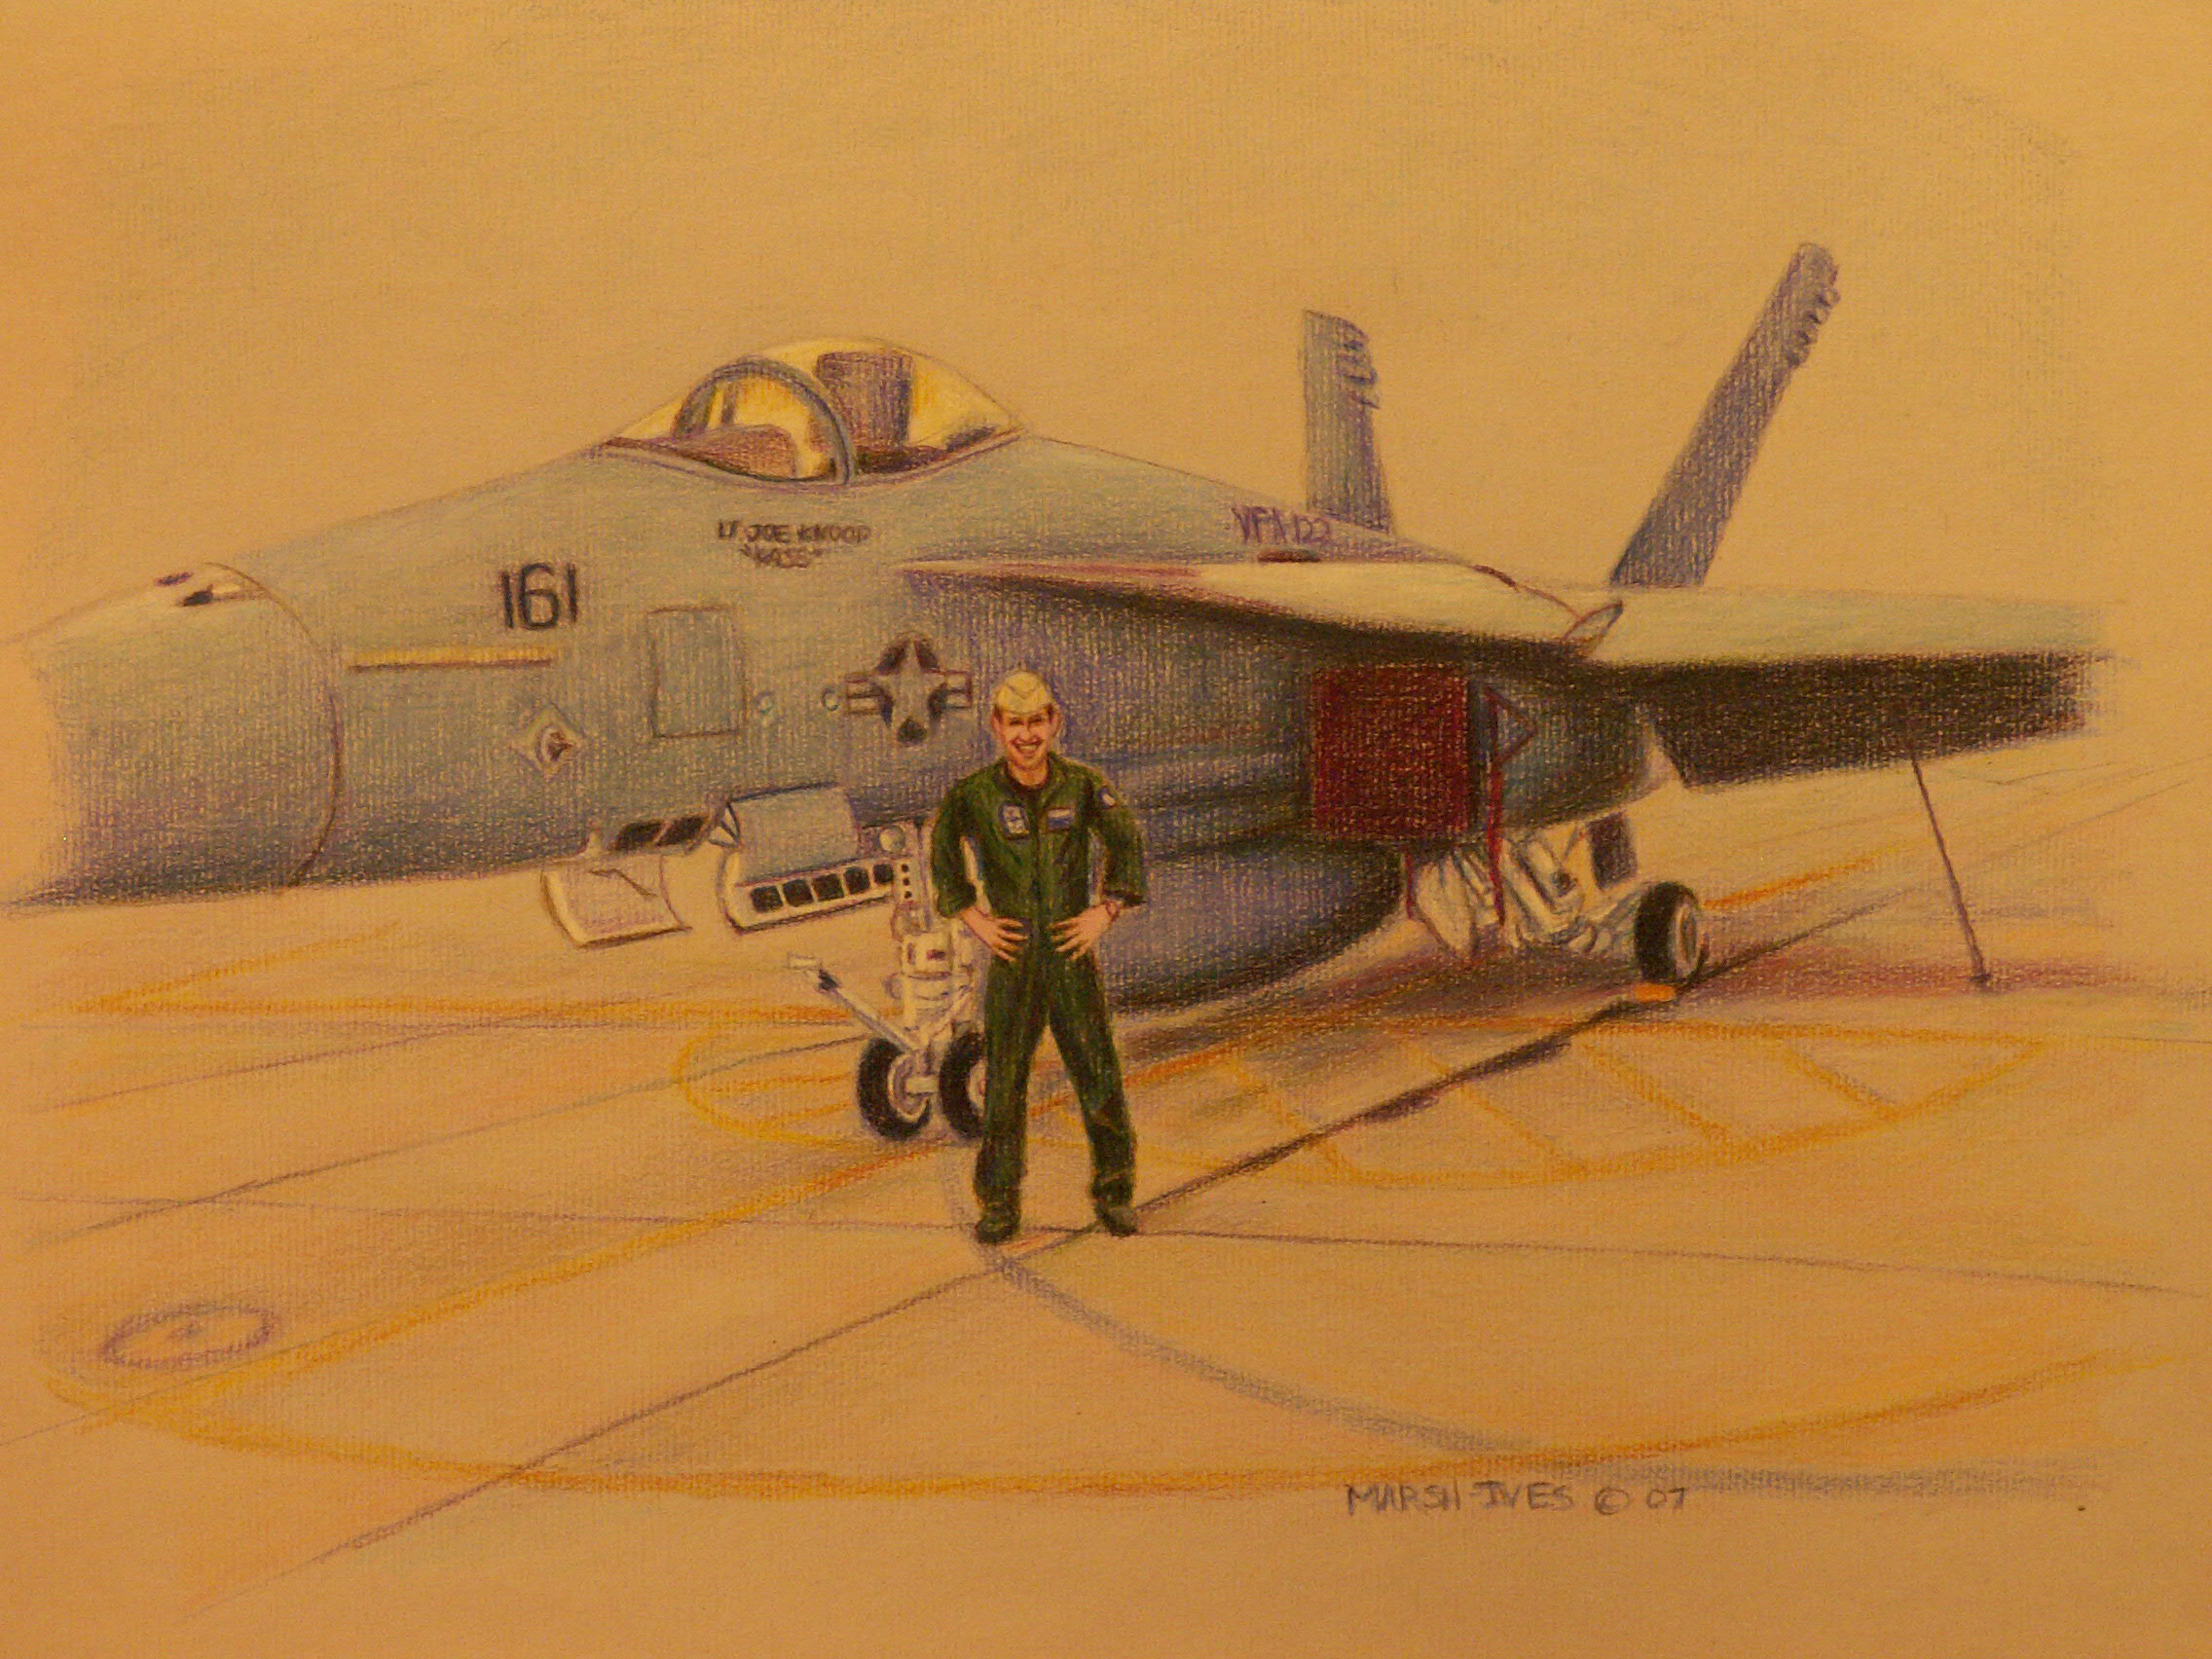 Ryan Long and his F18